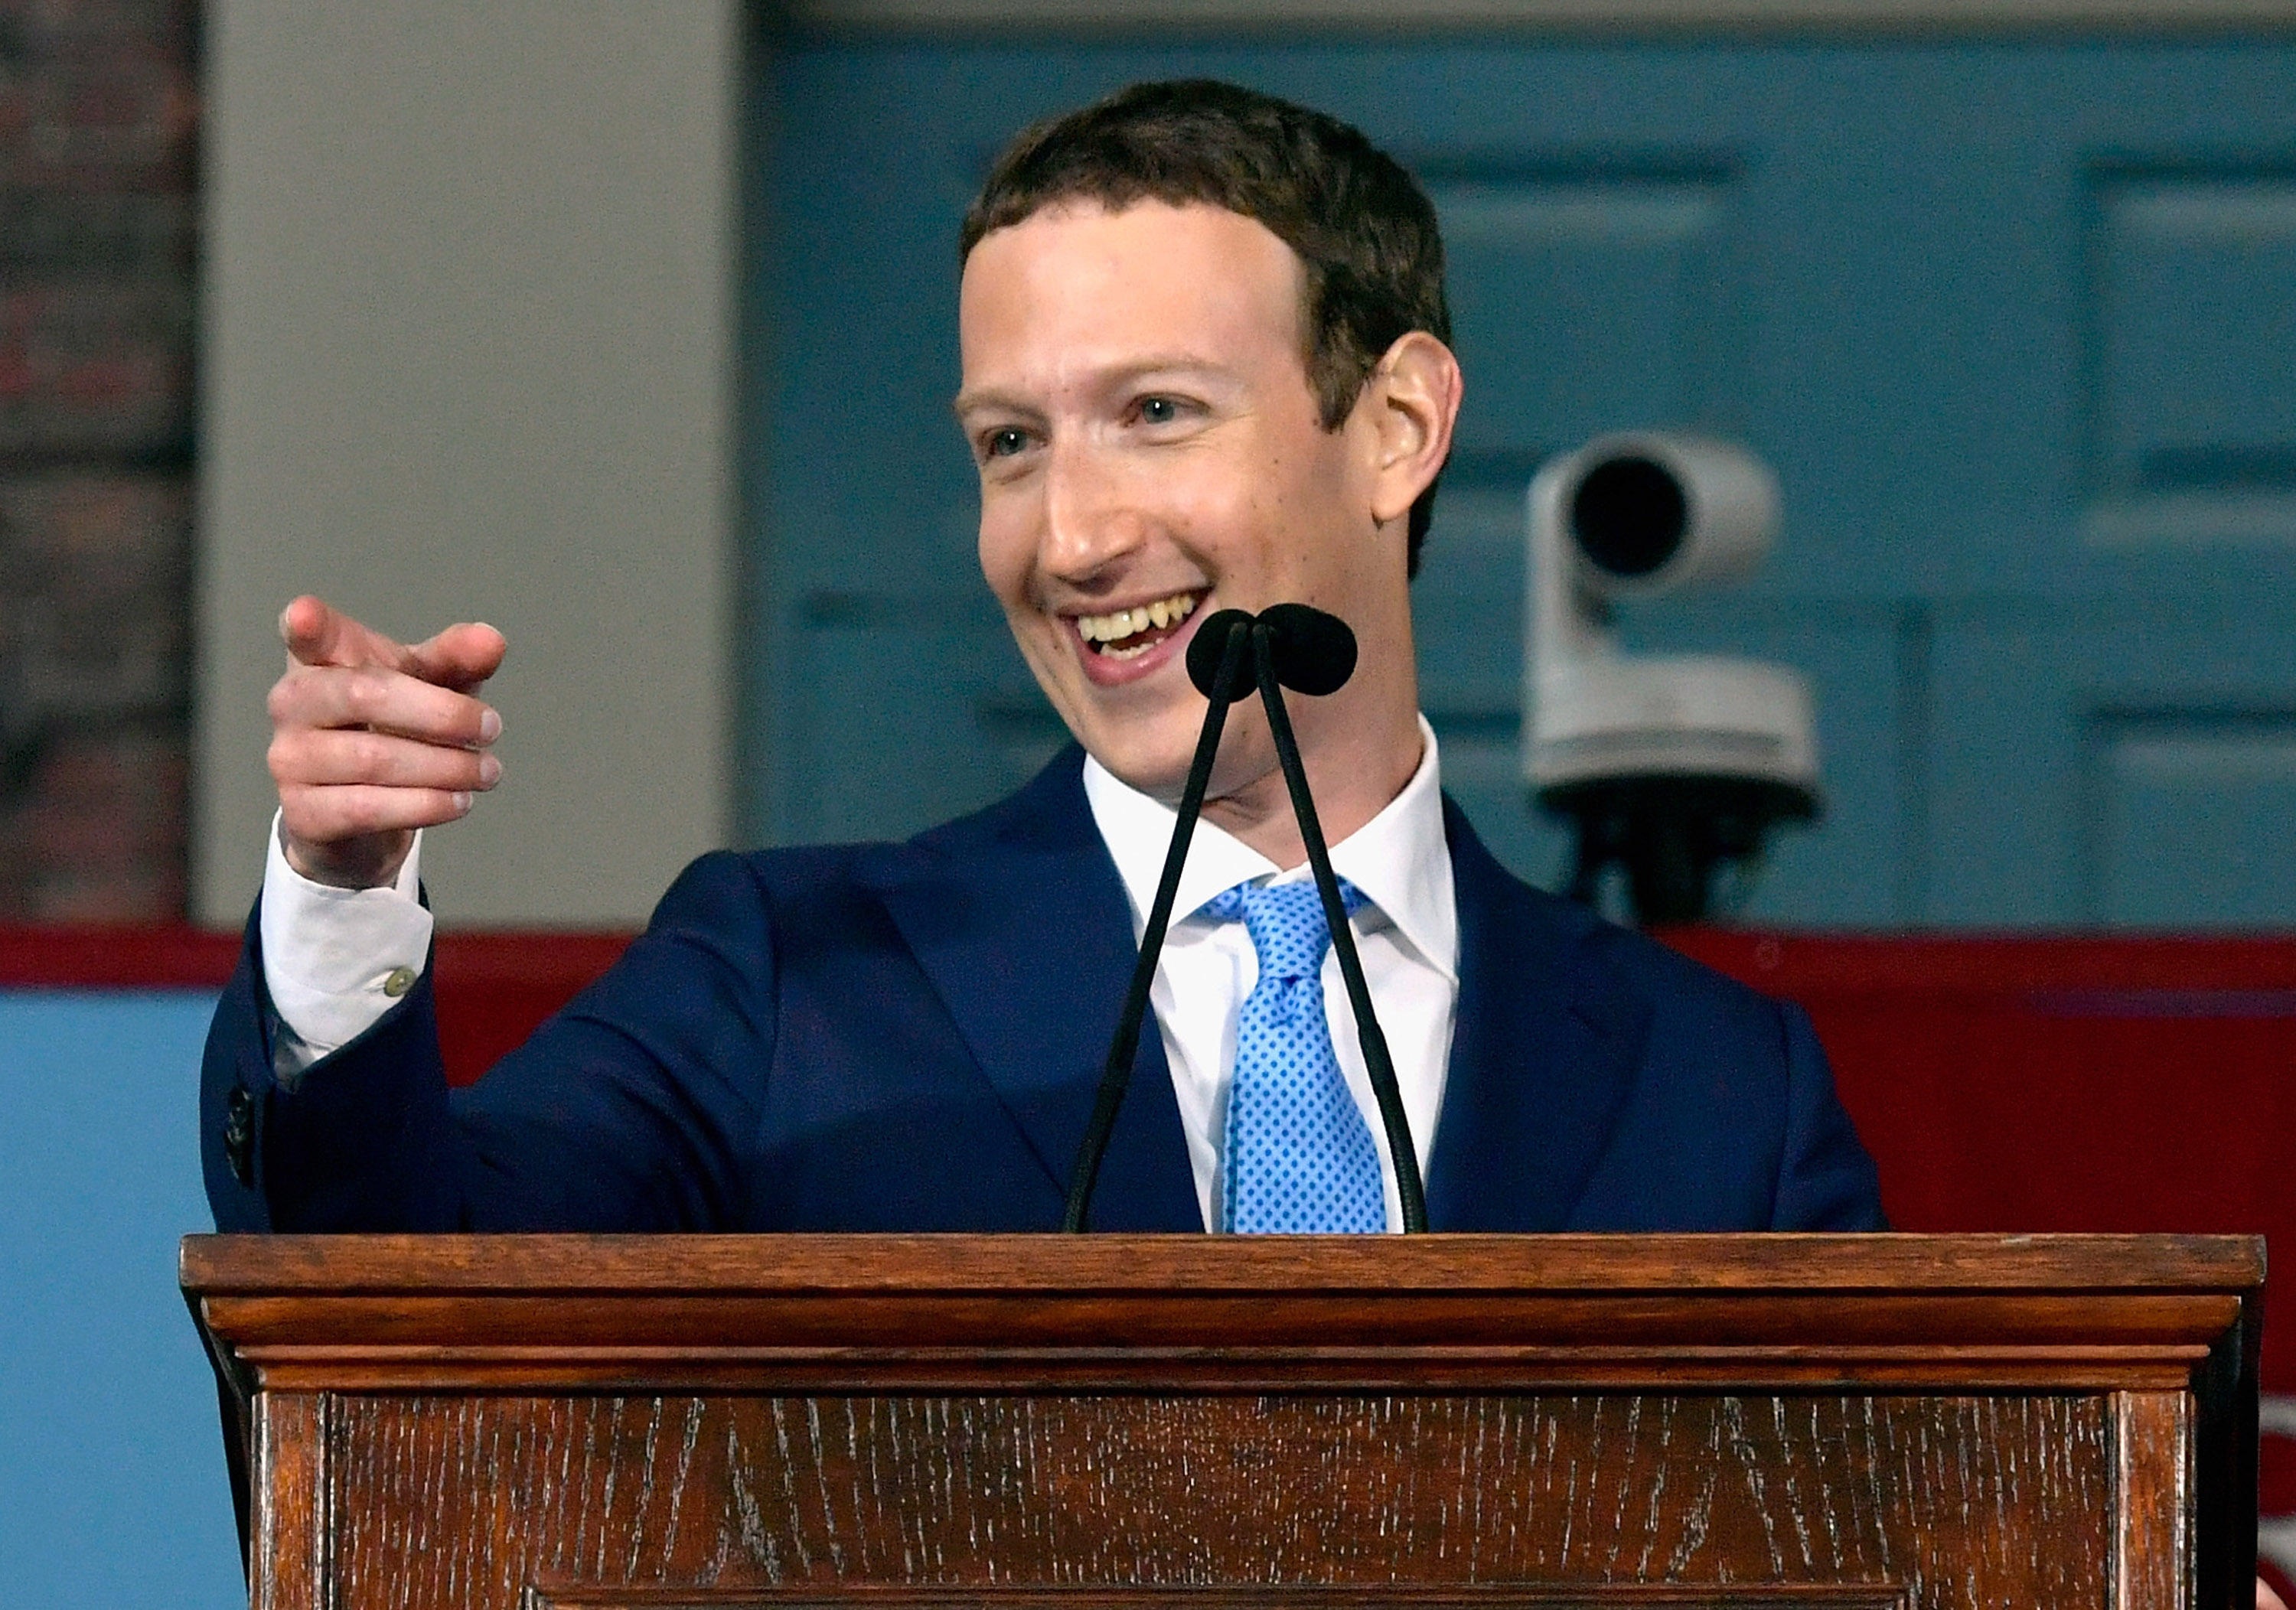 'Everything Facebook knows about you'